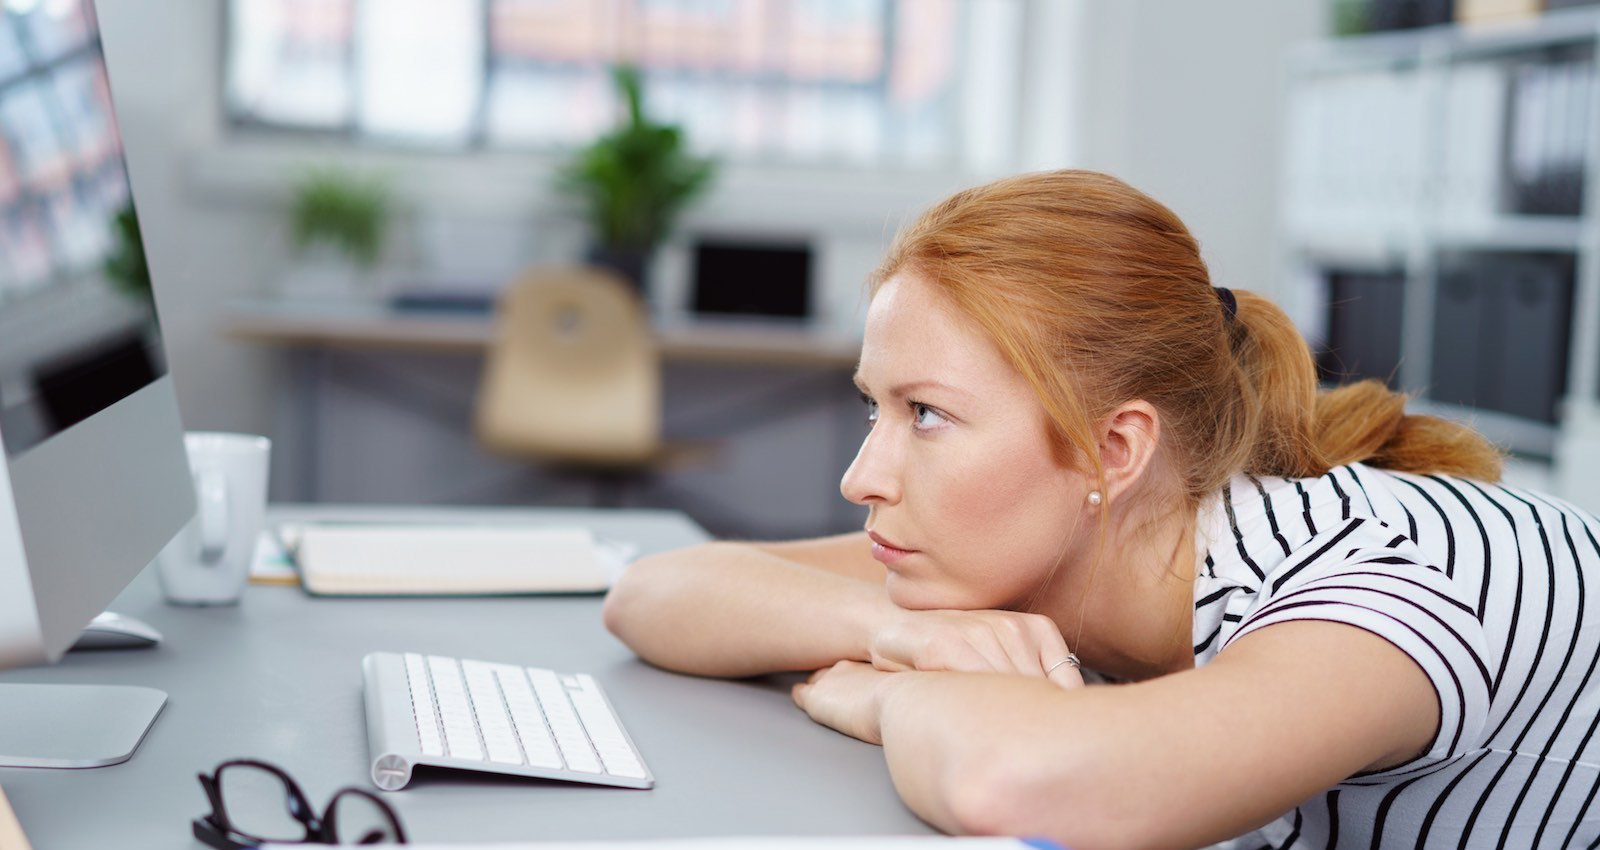 frustrated woman looking at computer screen